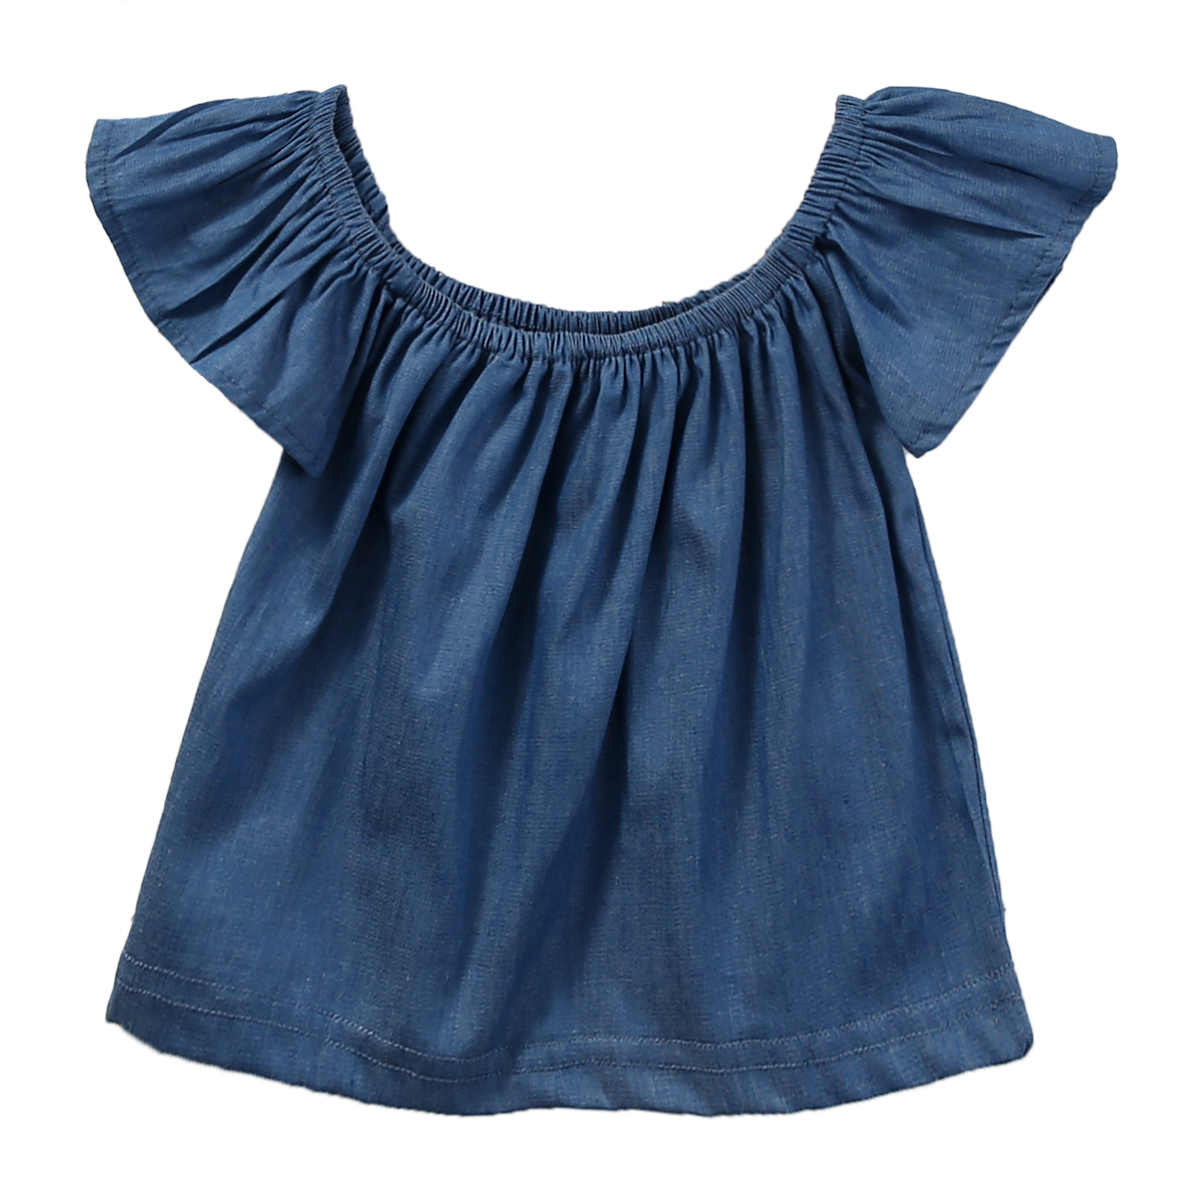 02bf31748 Pudcoco Baby Girls Off the Shoulder Denim Blouse Blue Cotton Toddlers  Jersey Girls Tunic Top Kids